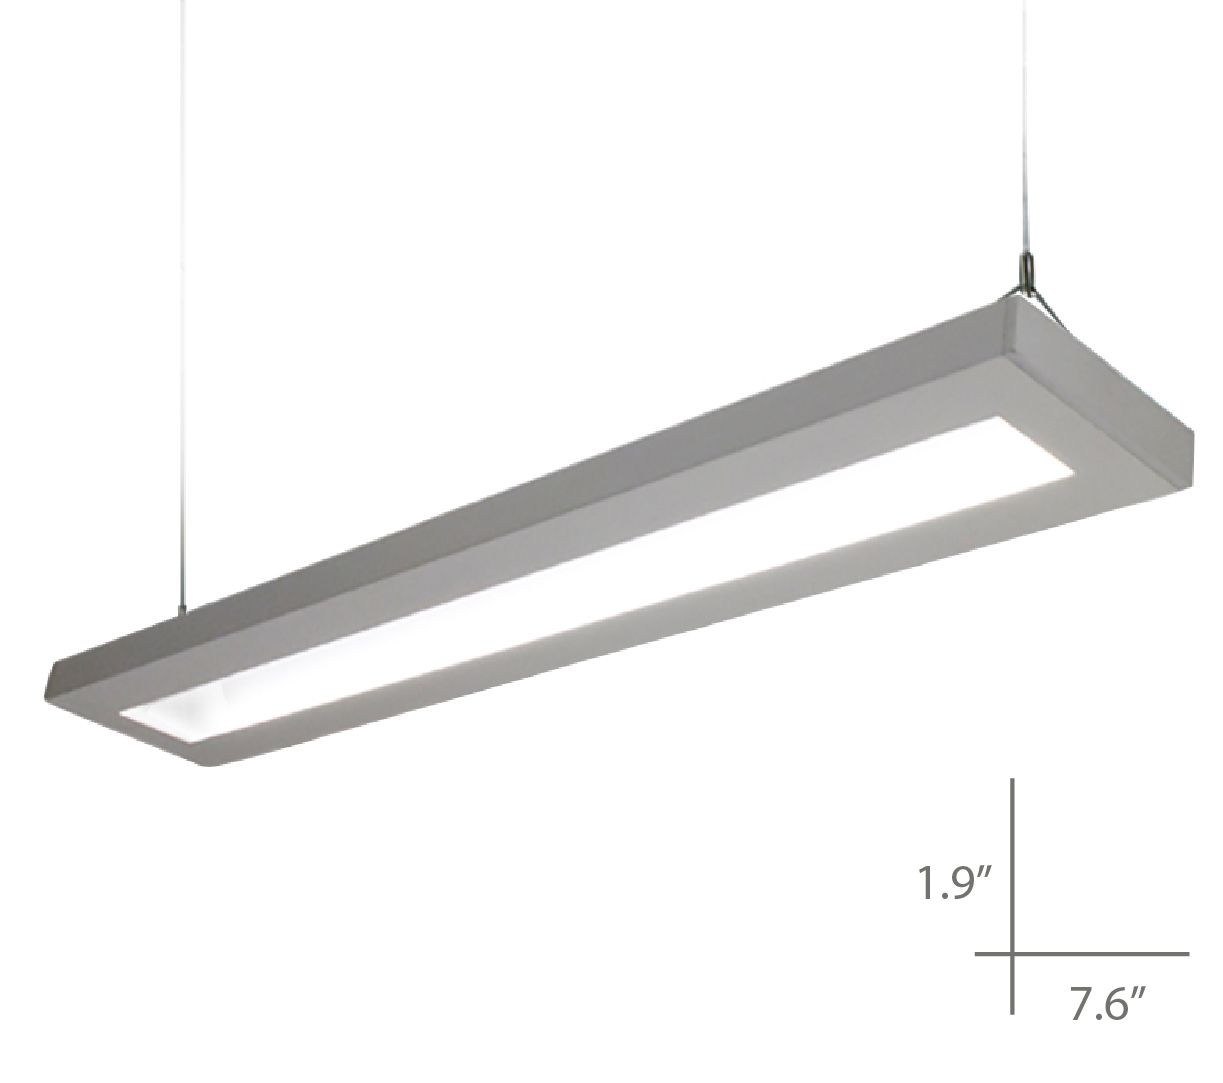 suspended lighting. Alcon Lighting 12113-4 NLP Architectural LED 4 Foot Linear Suspended Pendant Mount Direct/Indirect Light Fixture E